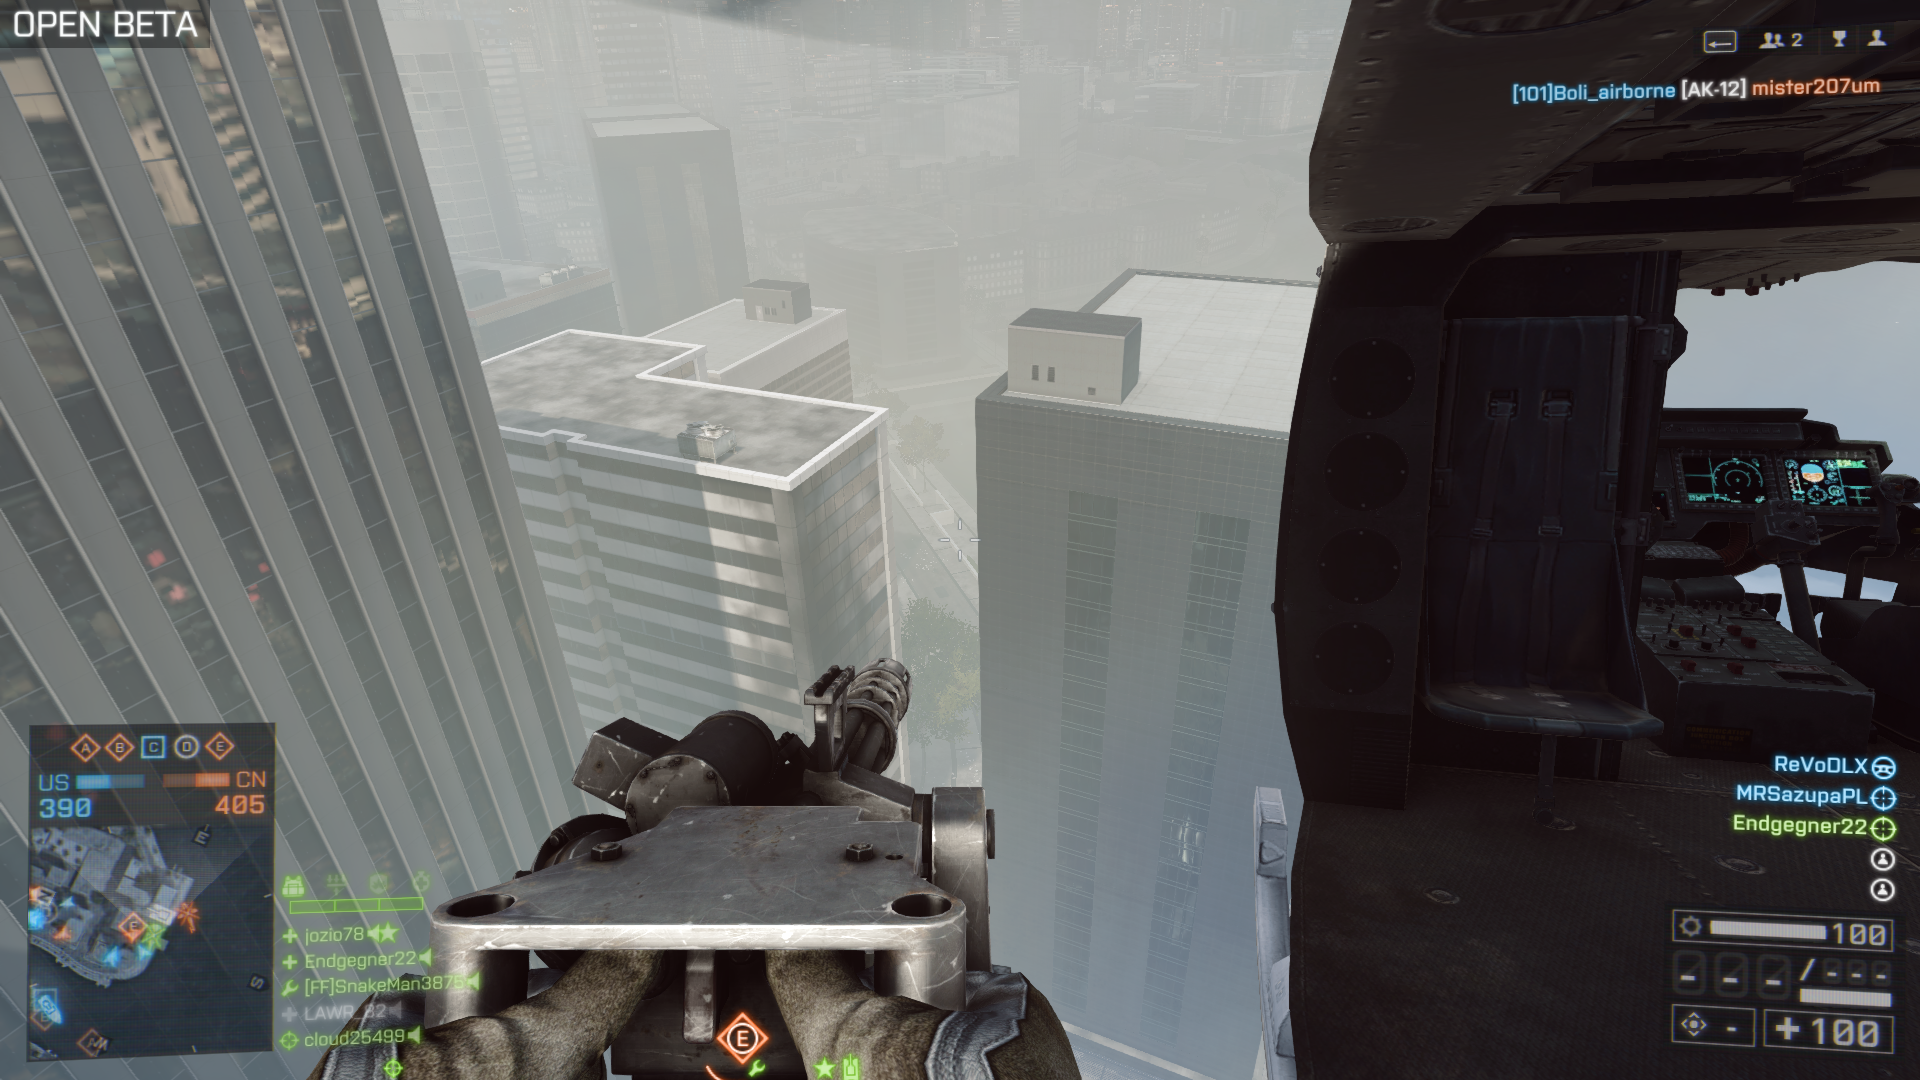 http://endgegner.fightercom.de/BF4_Screenshot/Battlefield4OpenBeta11.png